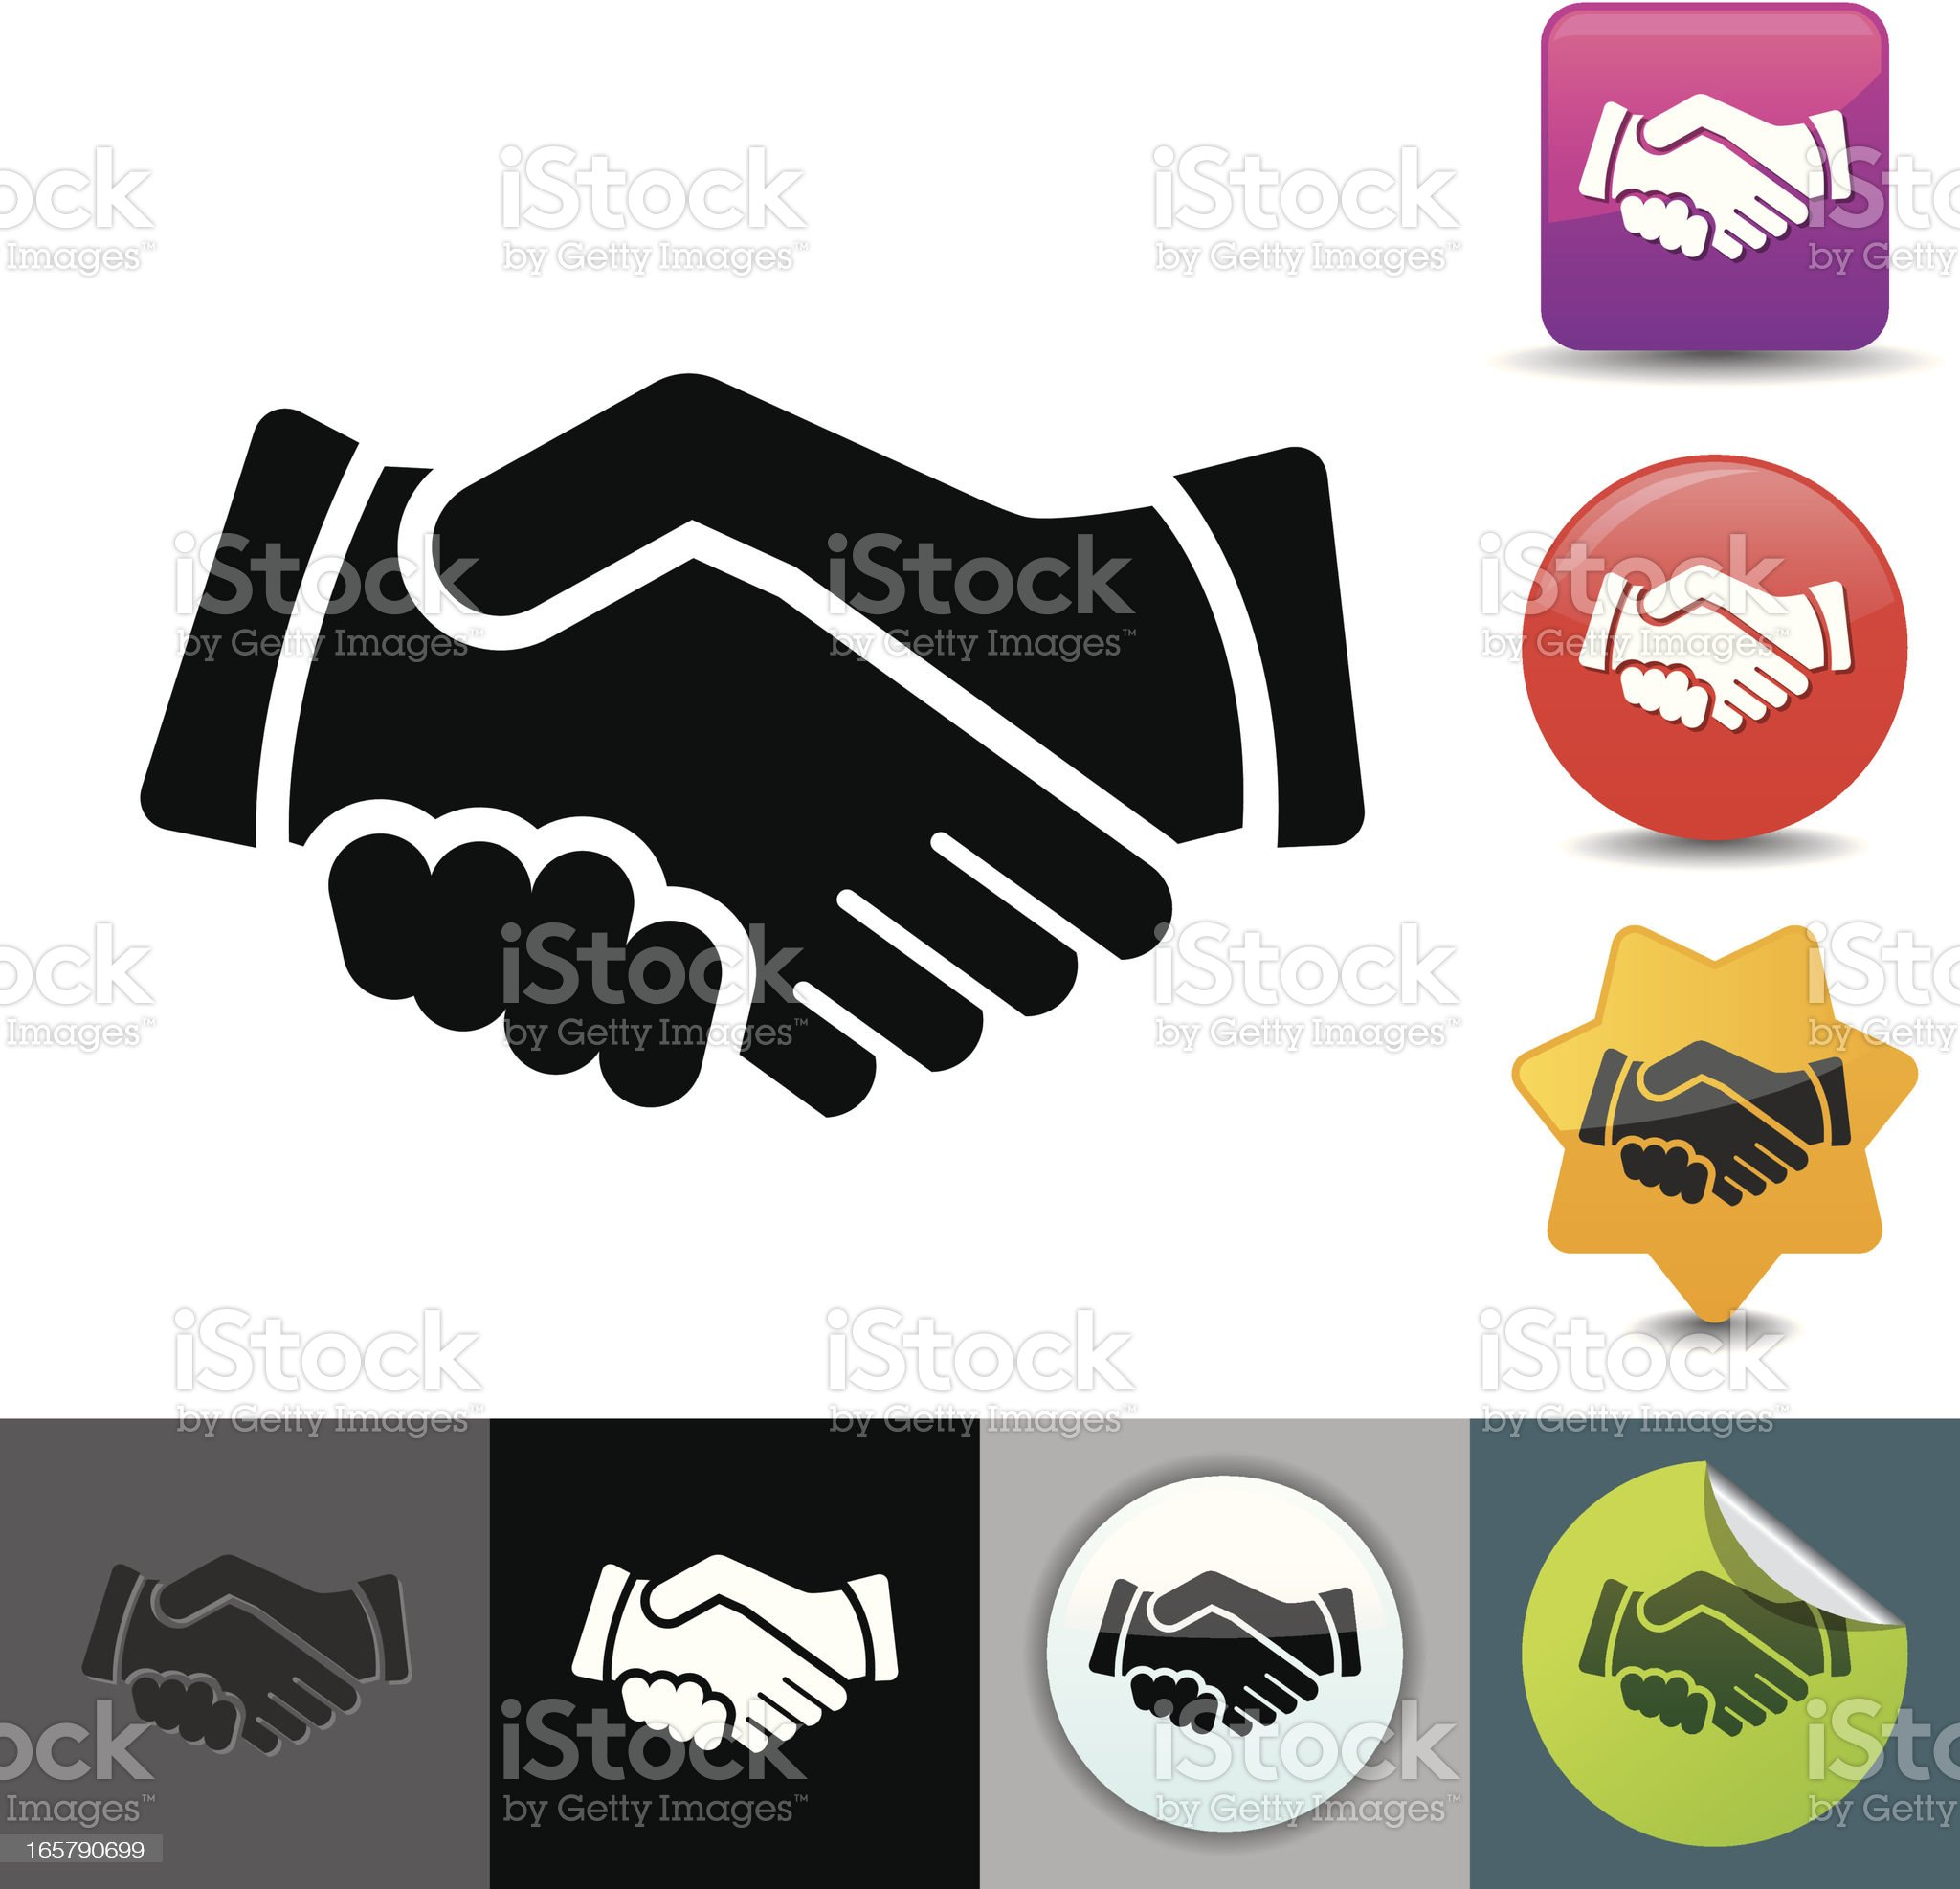 Various handshake icons, color and black and white royalty-free stock vector art